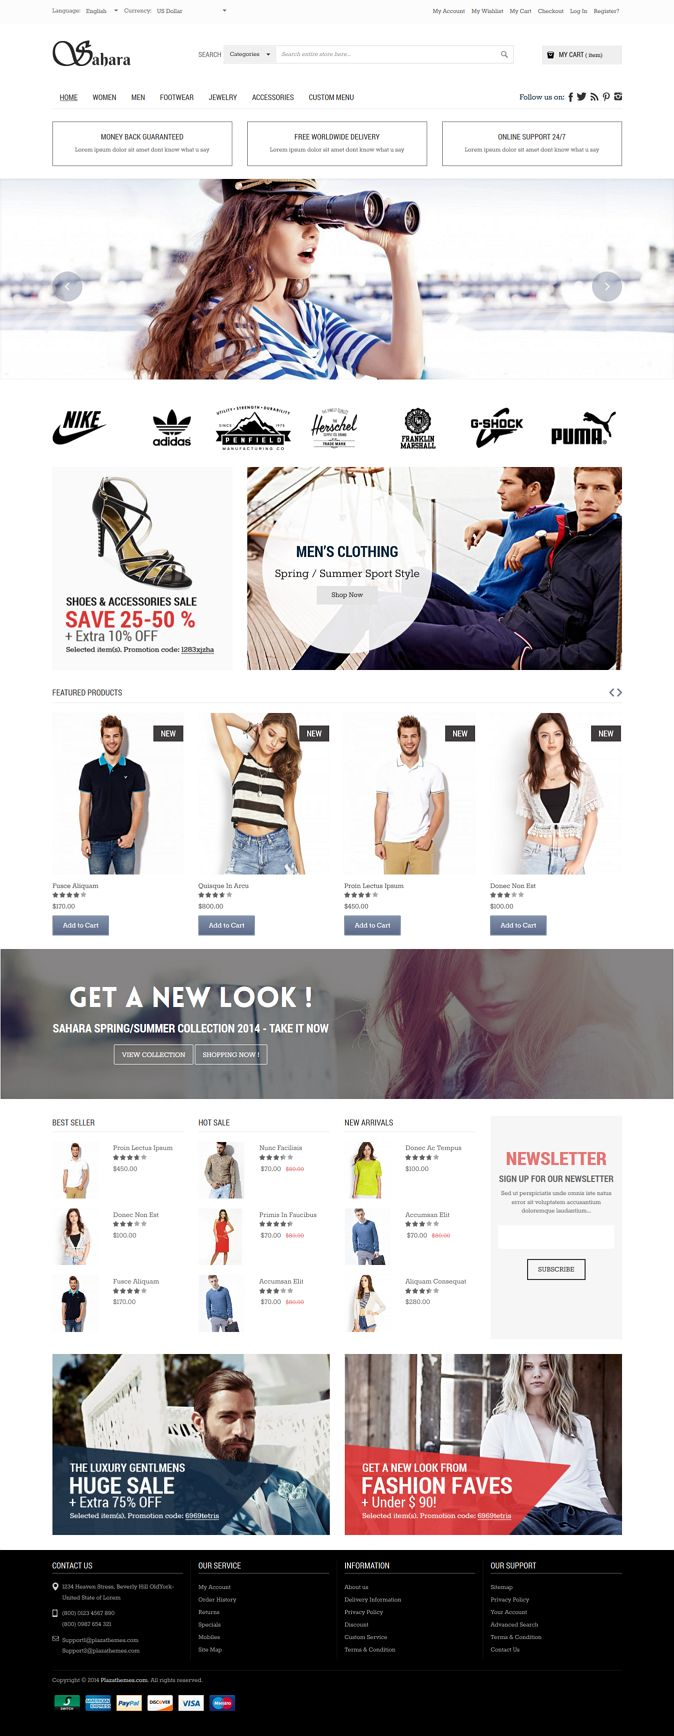 Sahara, the newest design from Plazathemes, has been created as a mega store Magento eCommerce solution for online stores.